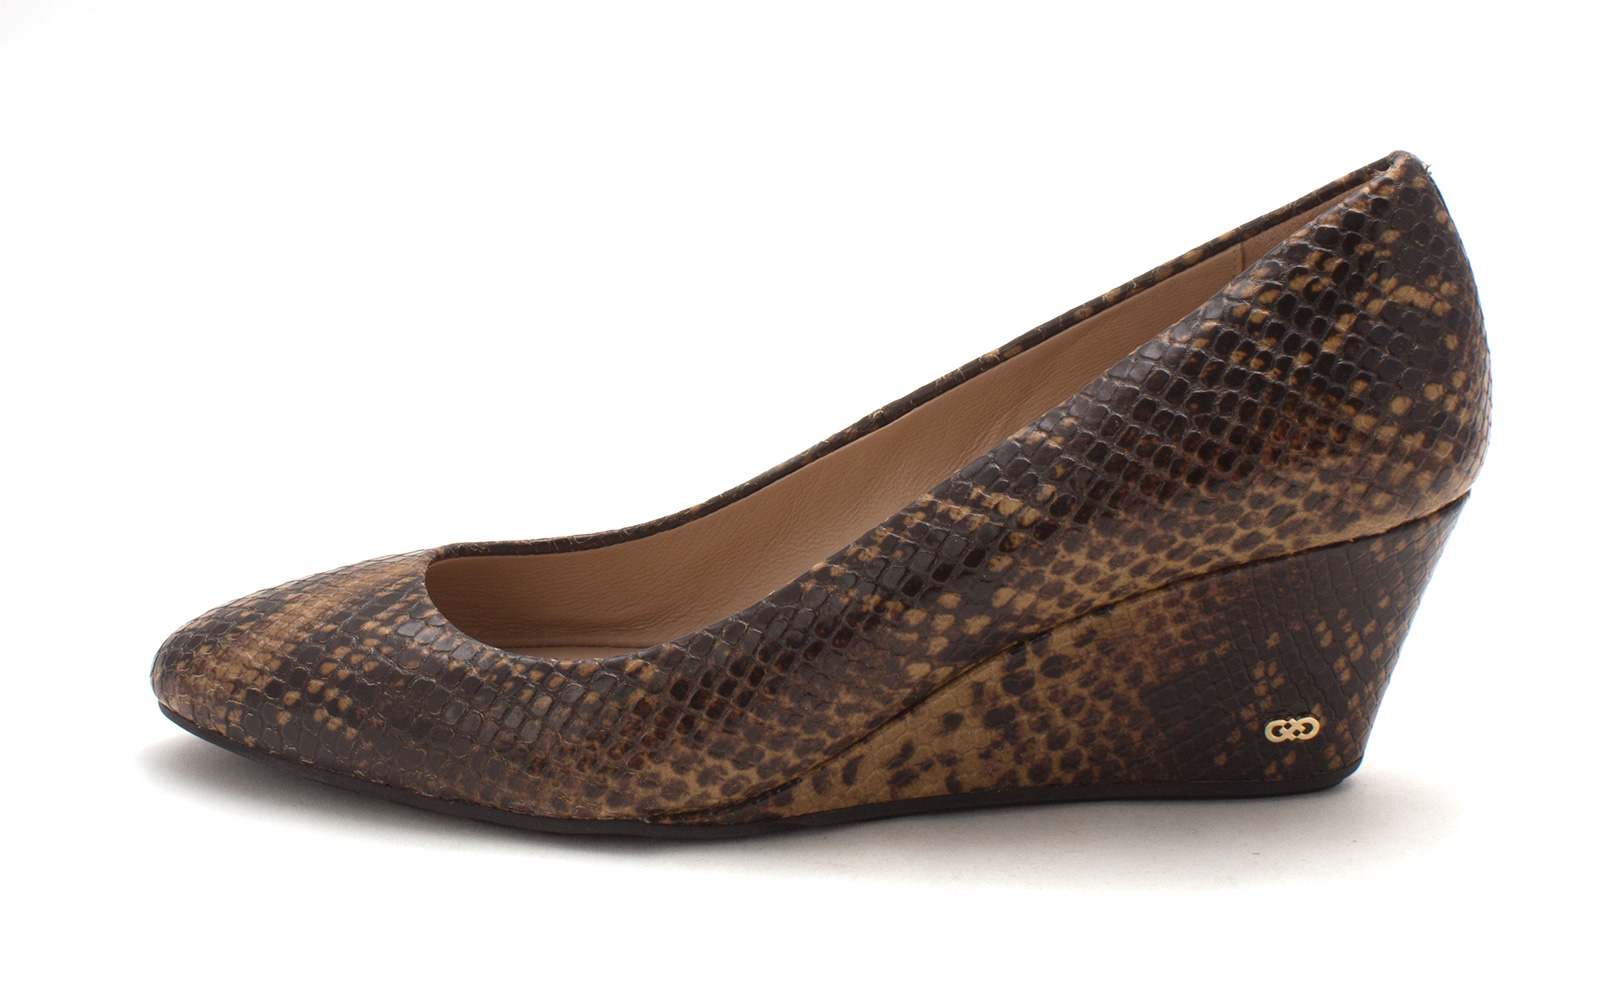 Cole Haan Womens 15A4108 Closed Toe Wedge Pumps Brown Snake Size 6.0